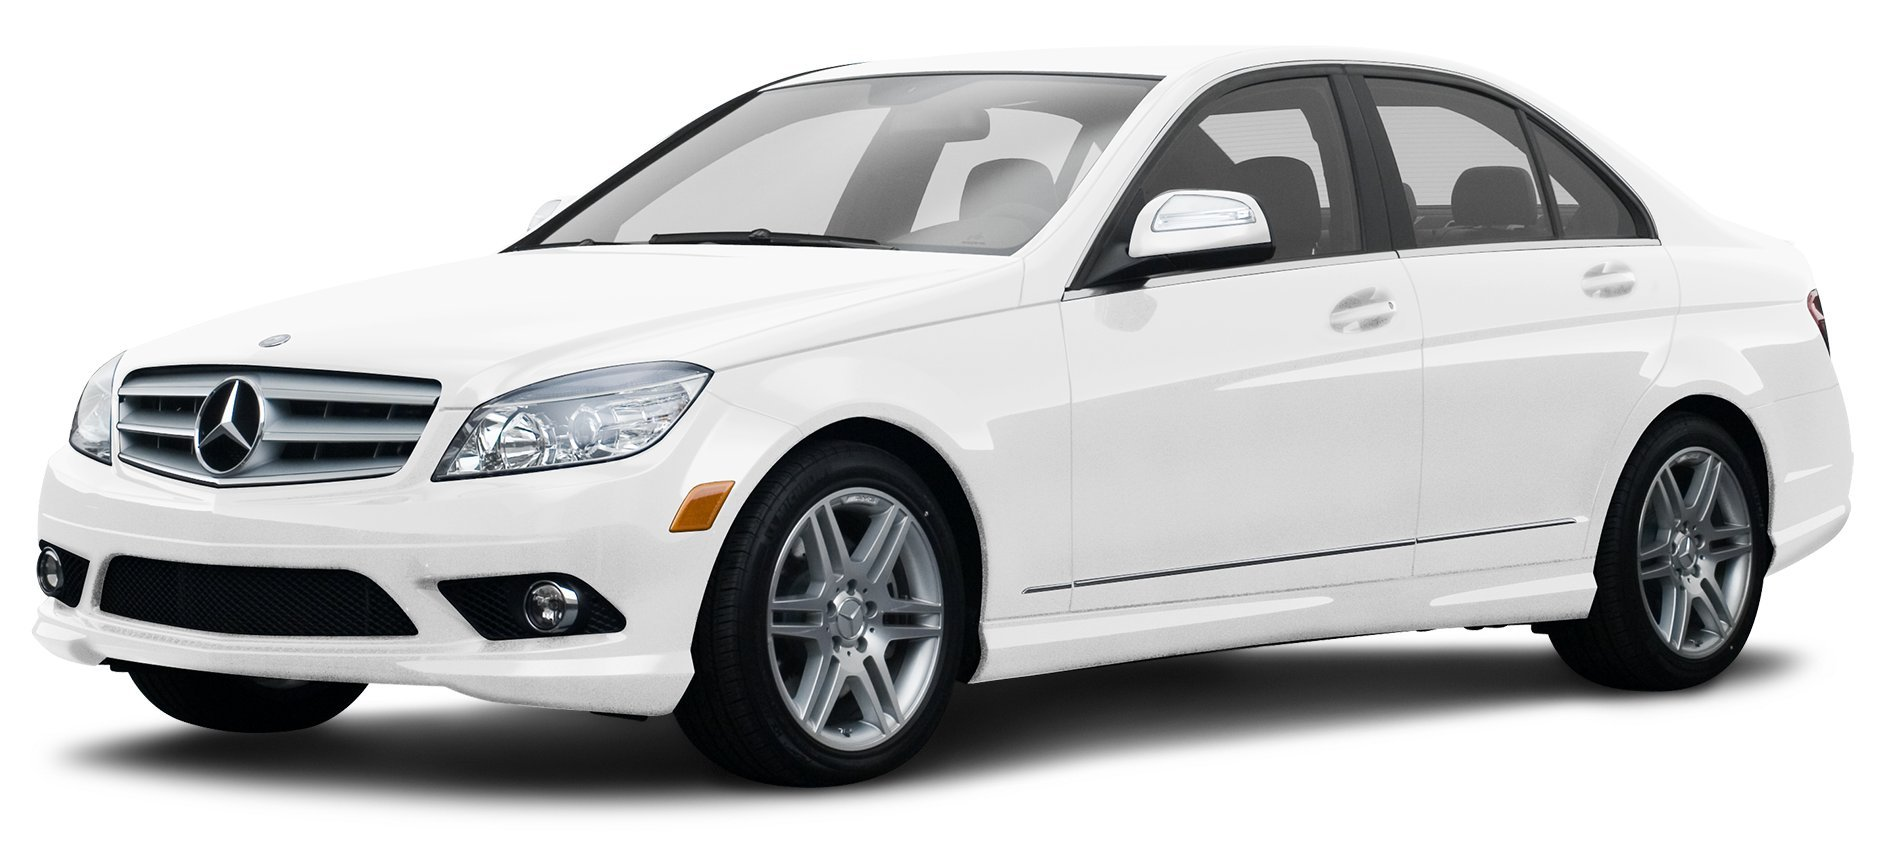 Amazon.com: 2008 Mercedes-Benz C350 Reviews, Images, and ...